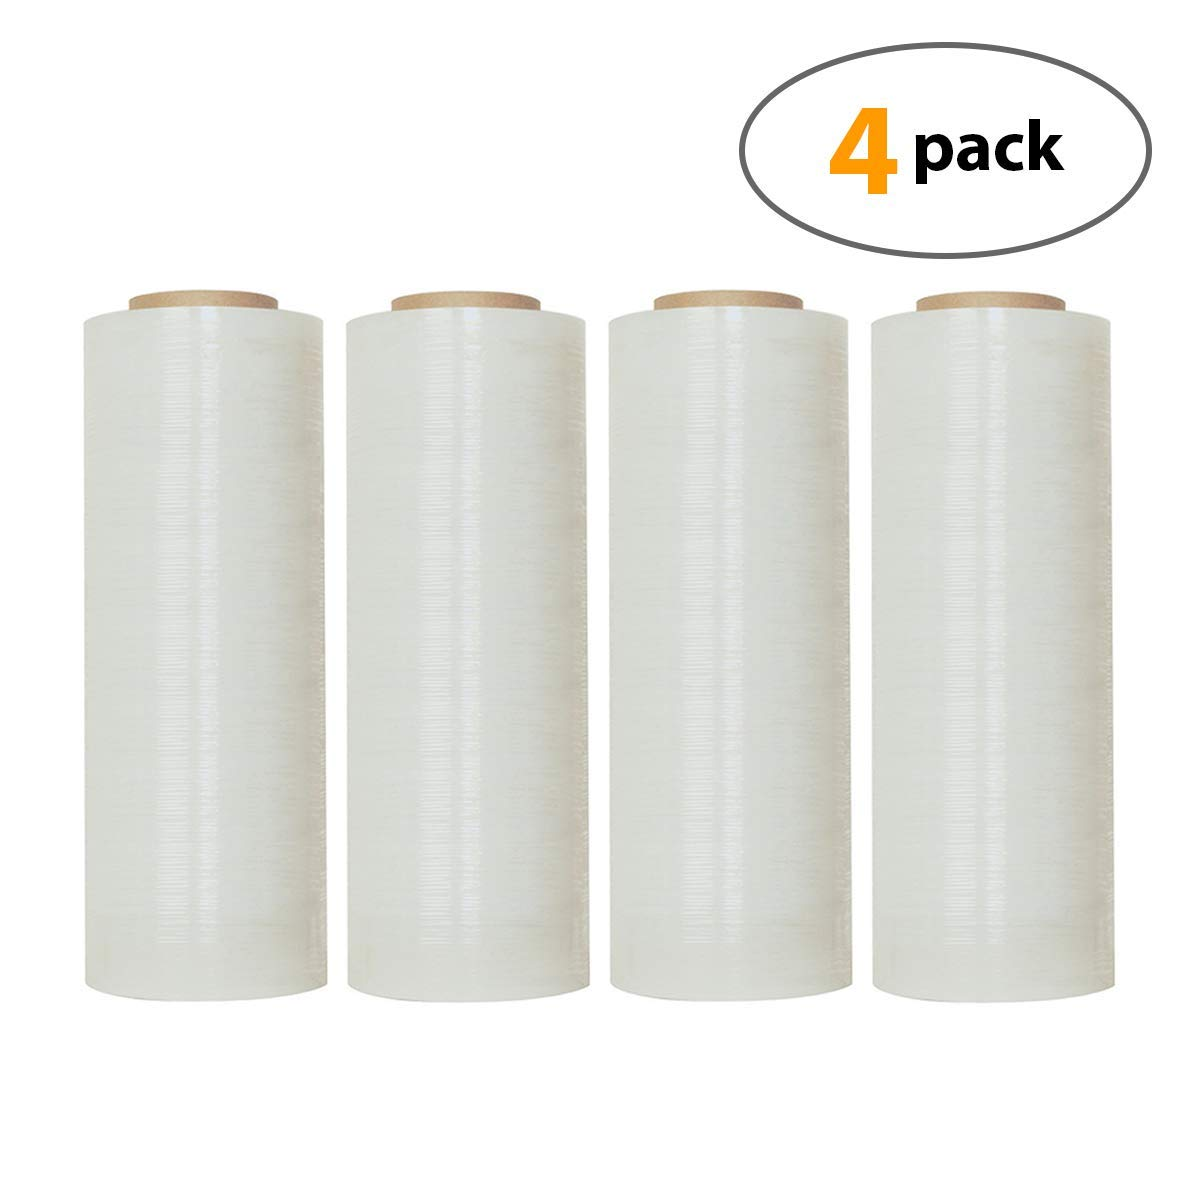 18'' X 1500 Feet Industrial Strength Pallet Shrink Wrap, 8.25 Lbs Per Roll, 80 Gauge(20 Micron) Heavy Duty Self-Adhesive Stretch Film Wrap for Packing, Moving, Boxes, Pallets (4 Rolls) by Pro-Plastics